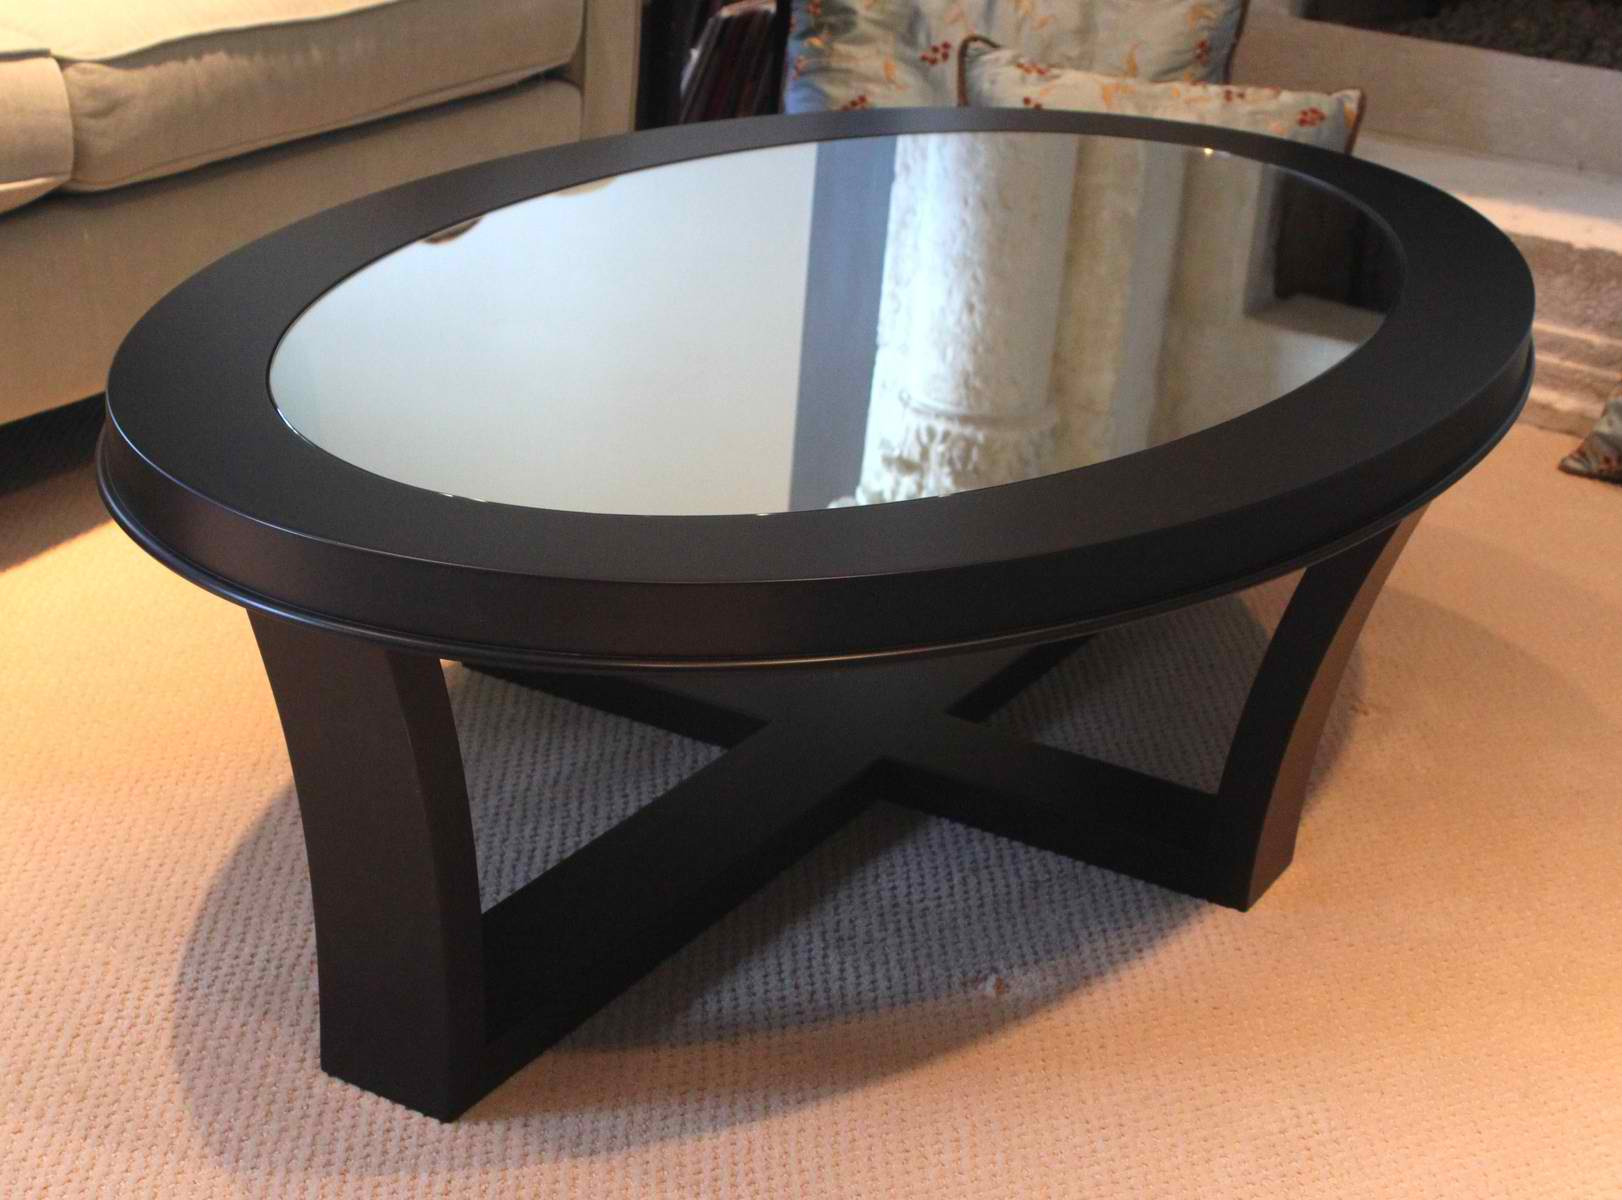 glass-top-coffee-table-with-storage-Furniture-Oval-Glass-Top-Coffee-Table-With-Storage-And-Wooden-Base-Frame-Painted-Black-Color-On-Cream-Carpet (Image 6 of 10)